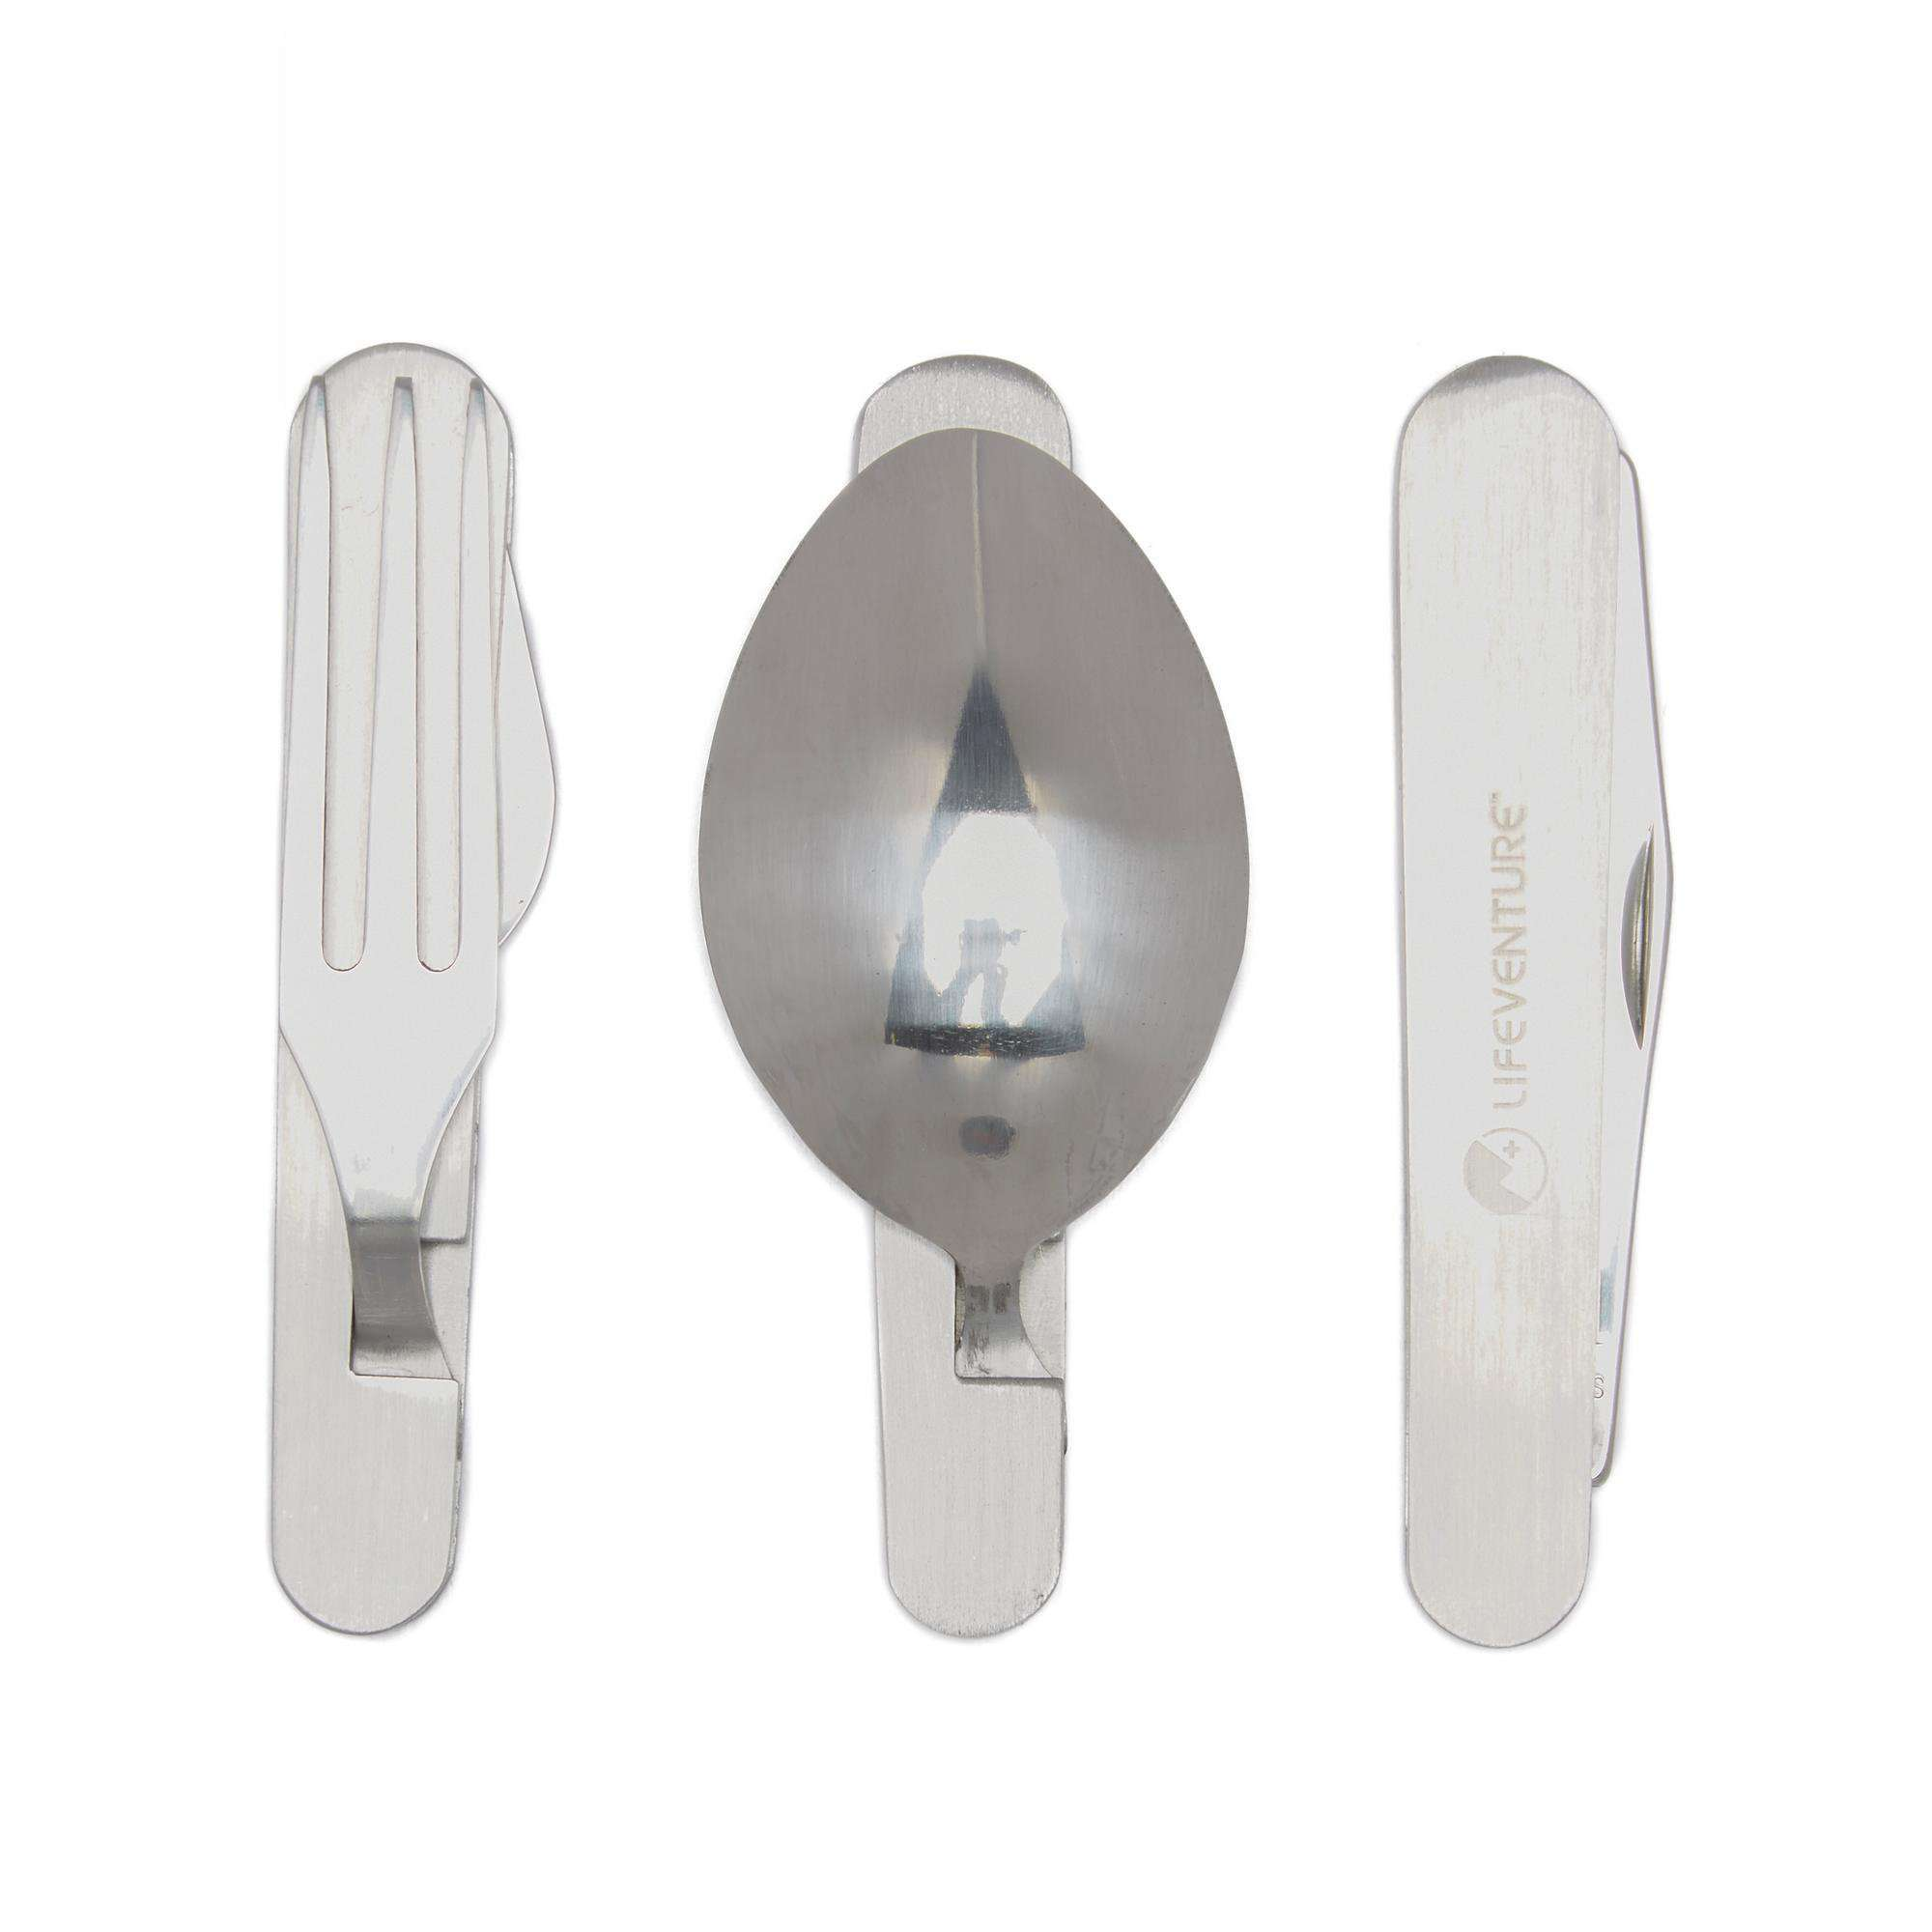 LIFEVENTURE Knife, Fork, Spoon - Folding Cutlery Set